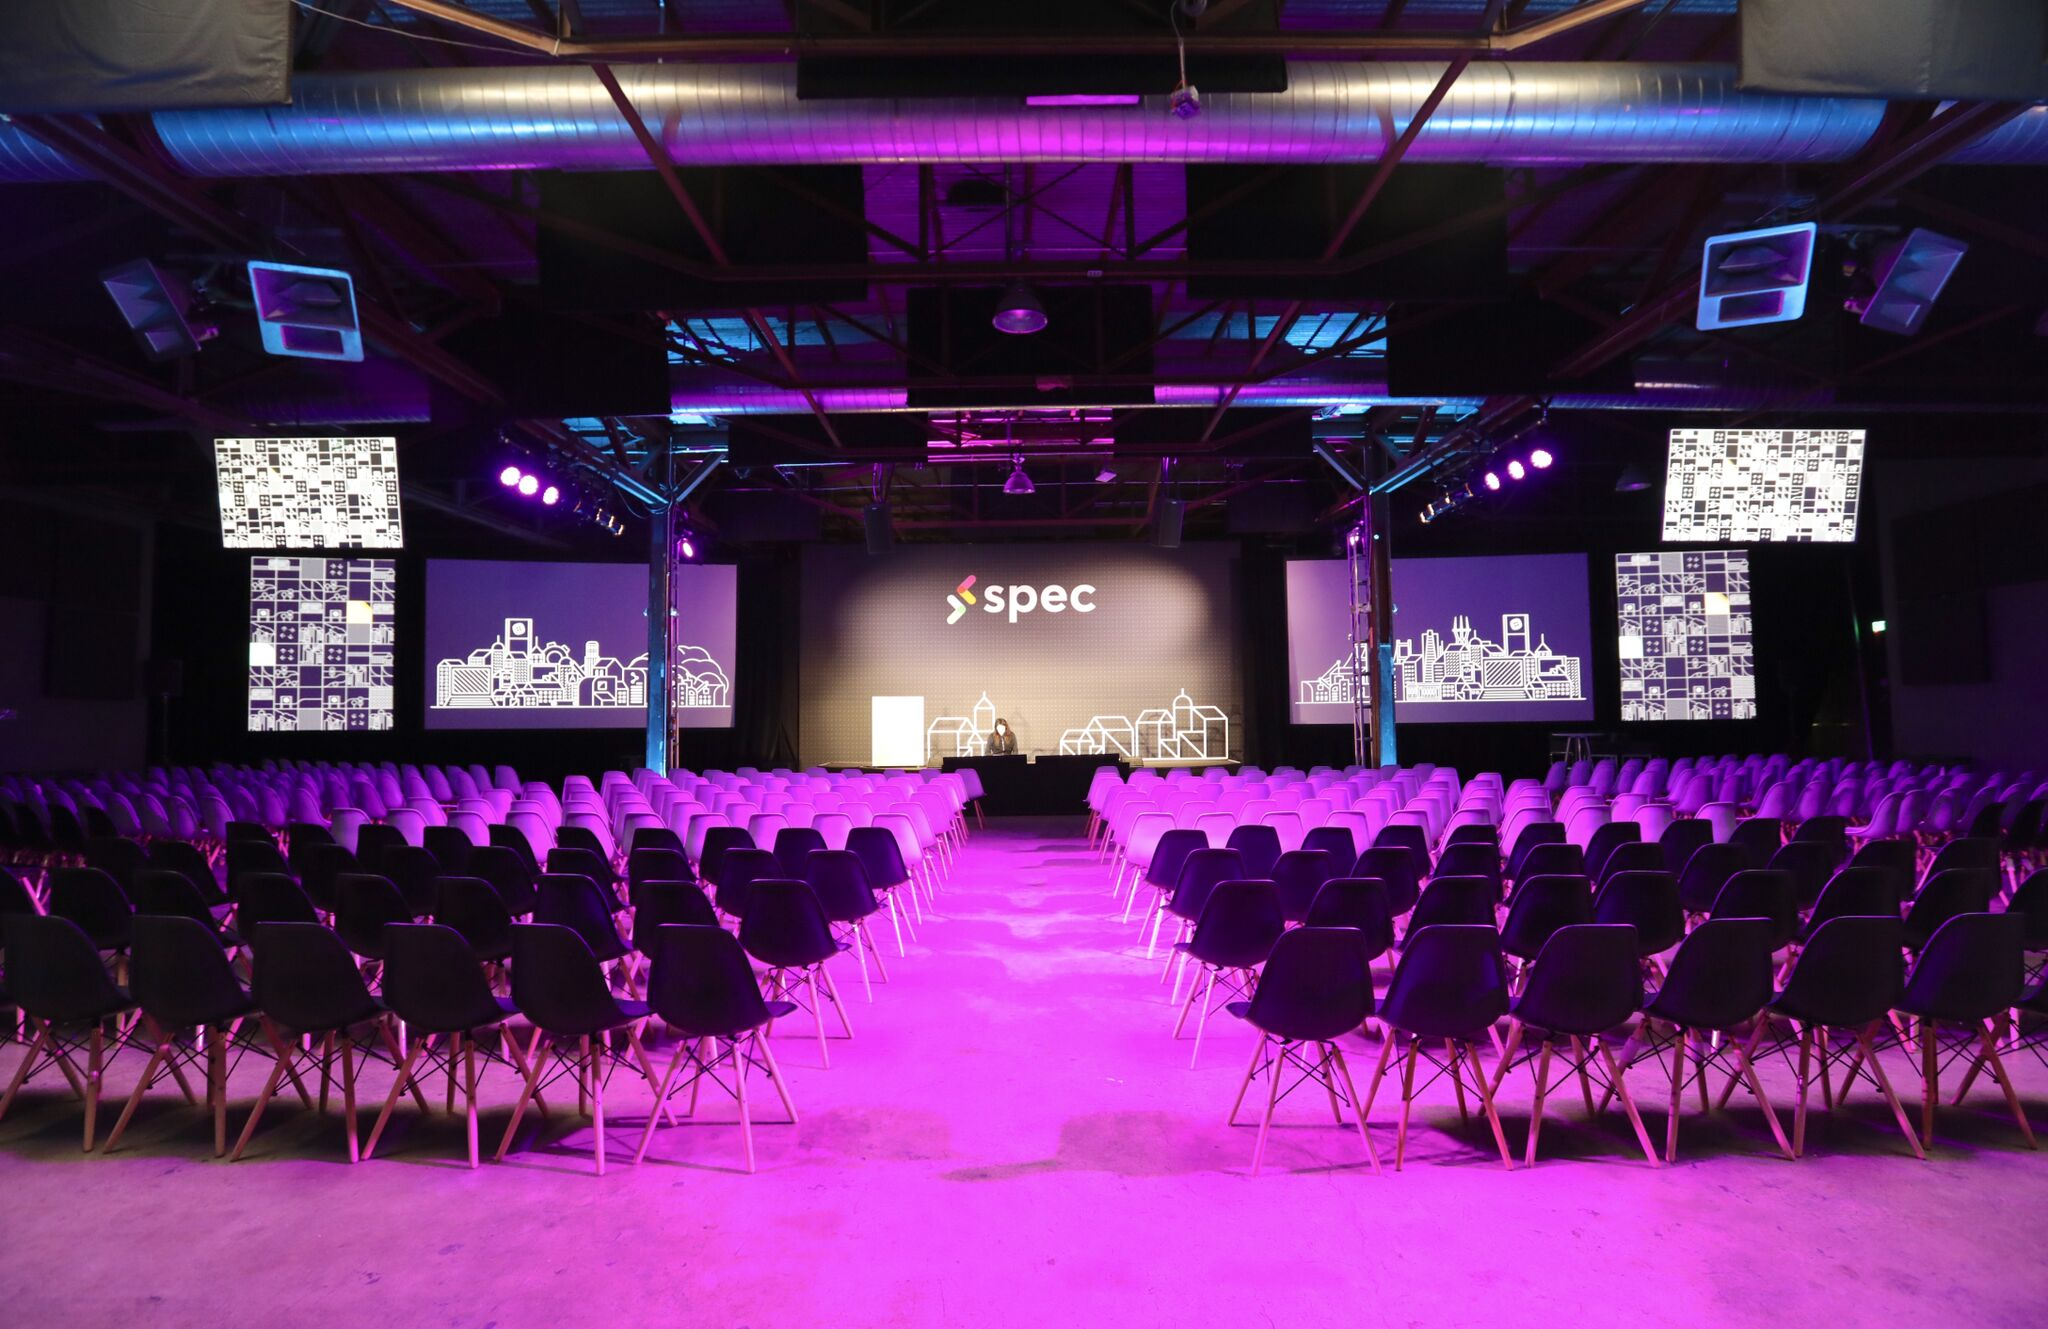 Spec: Slack's first developer conference